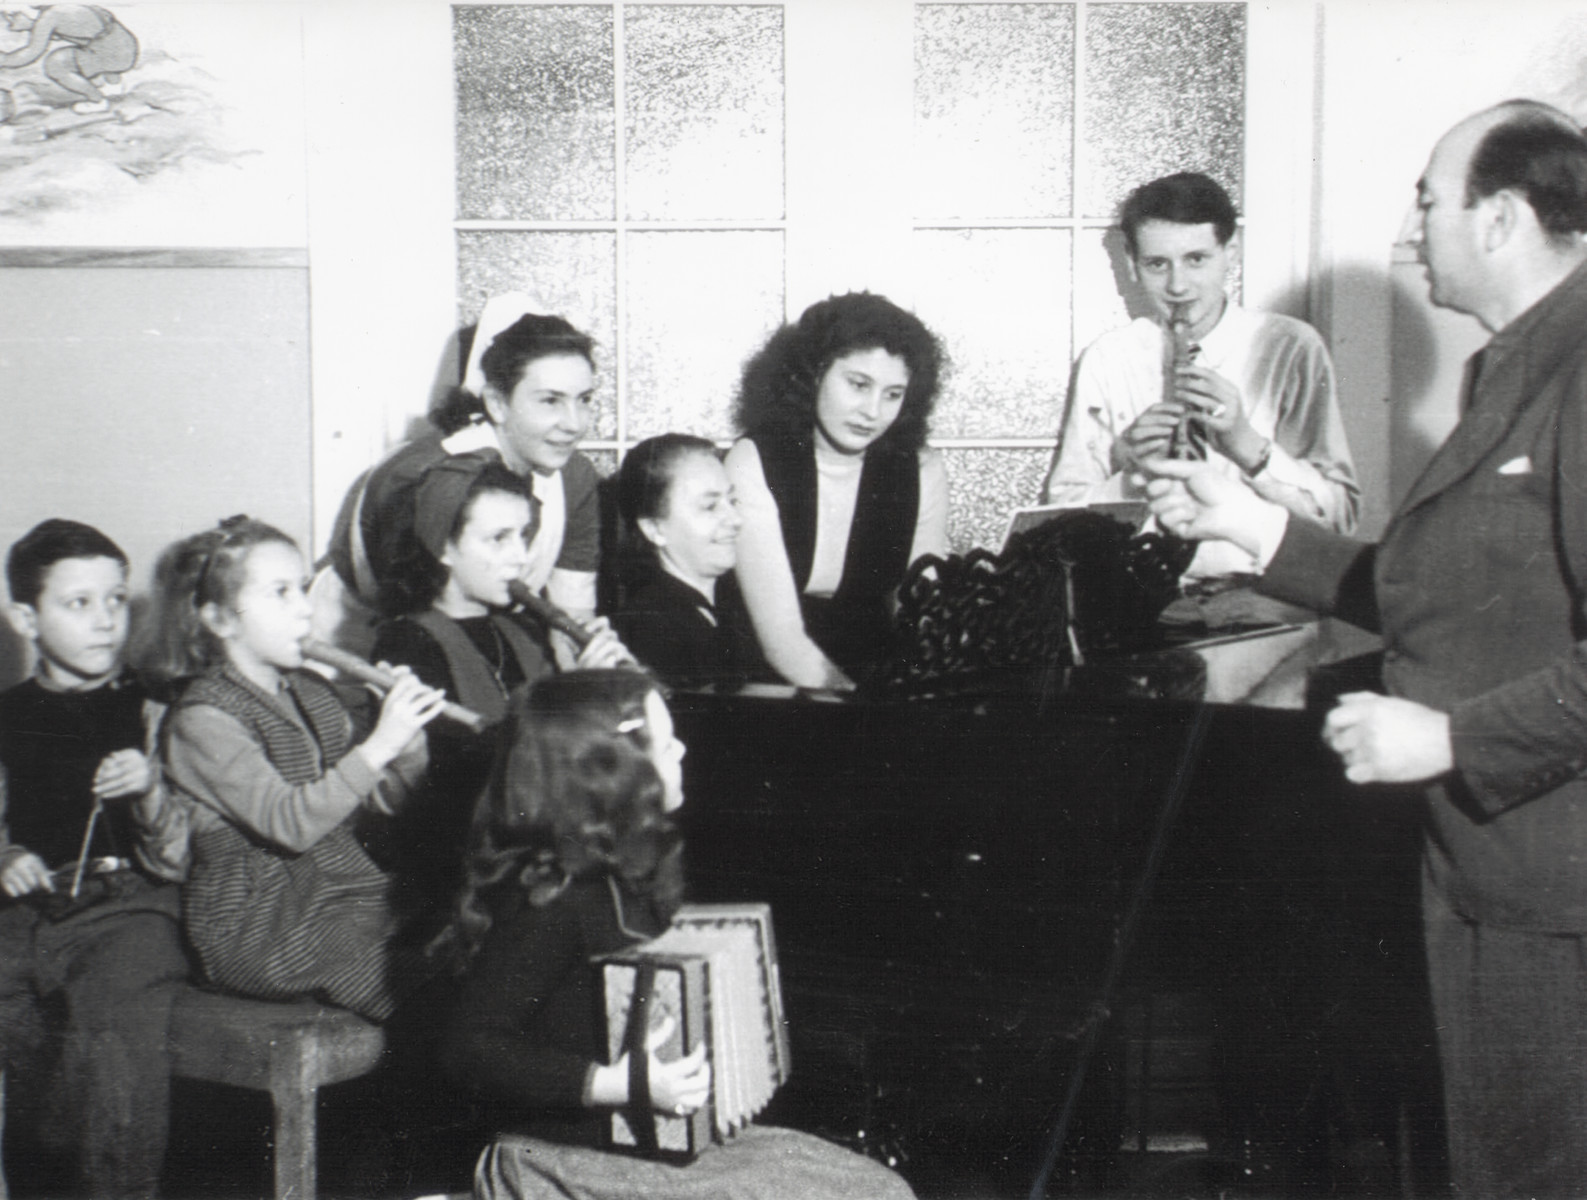 Children play recorder in a music class in Berlin daycare center Niedershoenhausen.   Ruth Anders pictured third from right.  Director of school Seigfried Baruch, pictured right, was in Auschwitz. Wolfgang Rosenthal, second from right. Mrs Scott, pictured fourth from right. Mananne Latter, pictured fifth from right.